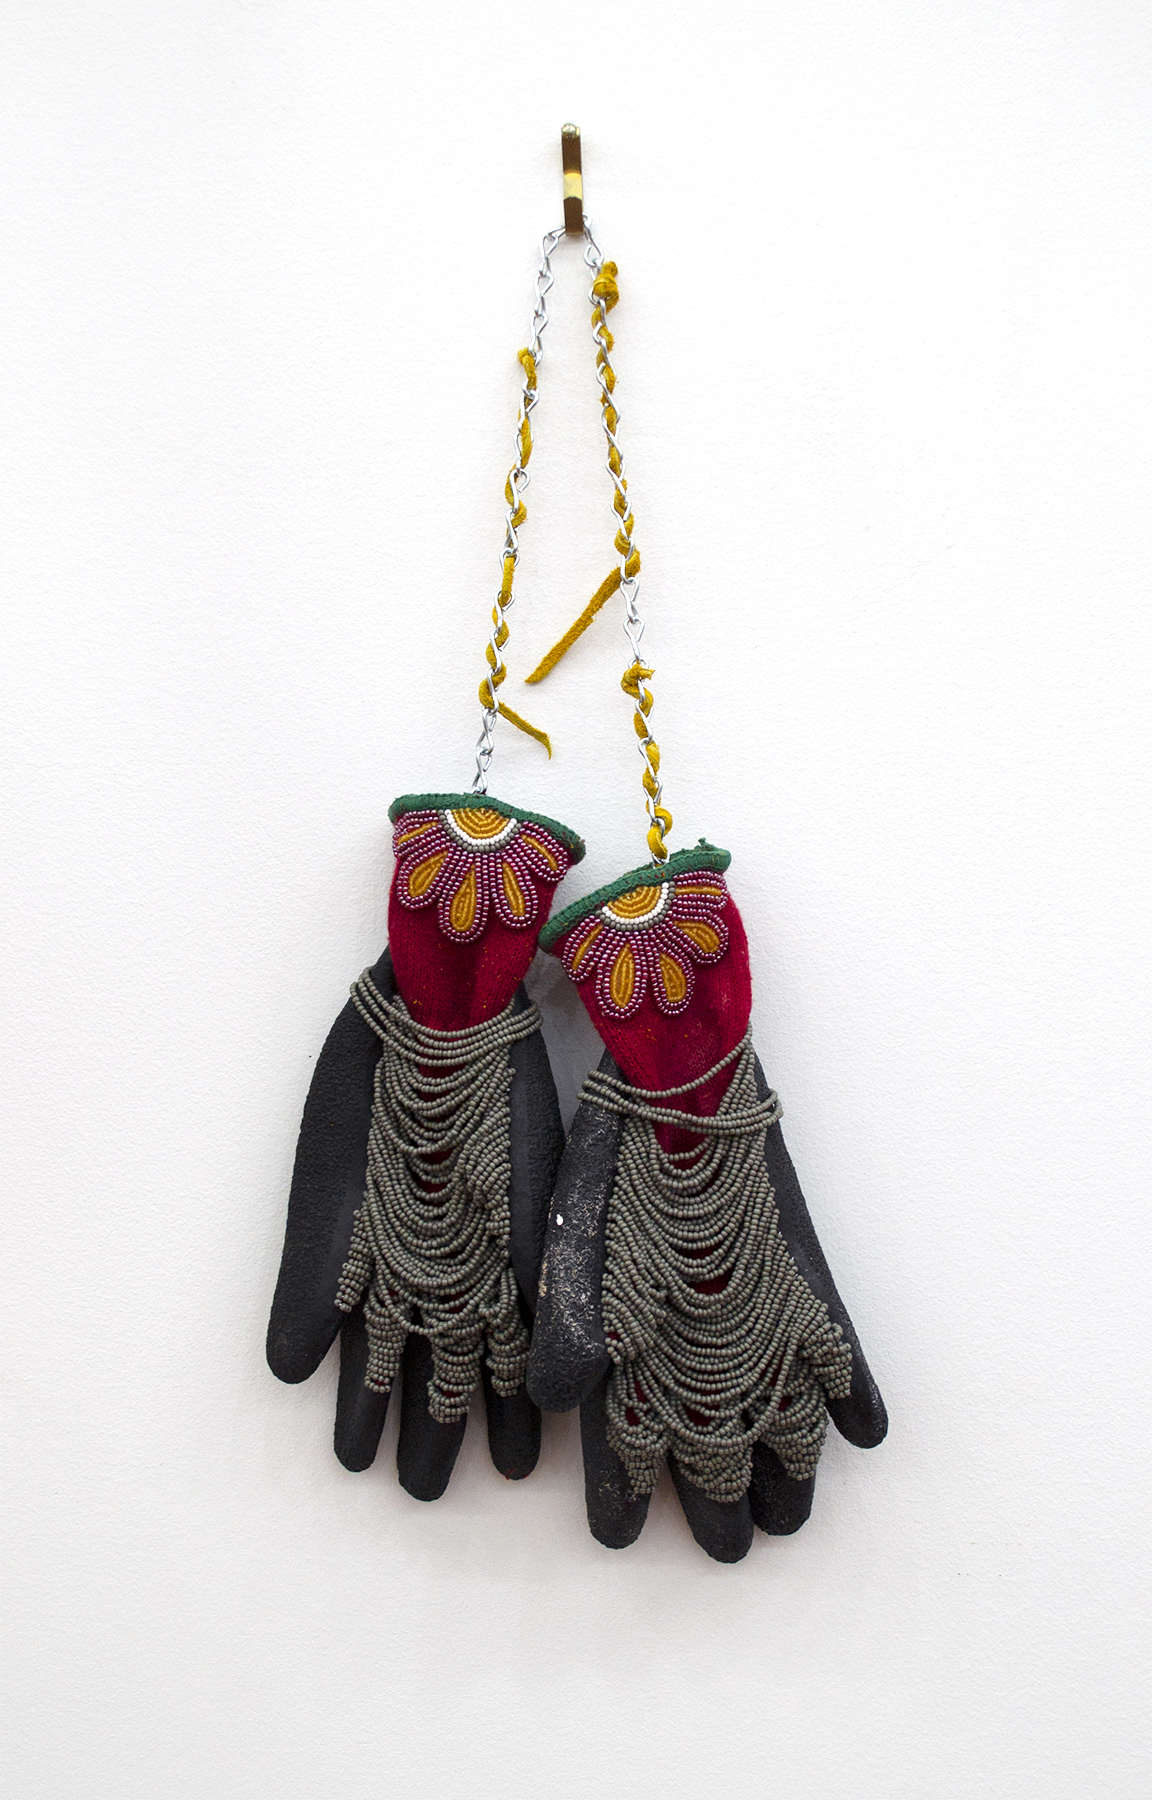 "Half Son Gloves, 2018, Audie Murray (Métis), Gloves, beads, leather, metal chain, 17"" x 8.5"" x 3"", SOLD"